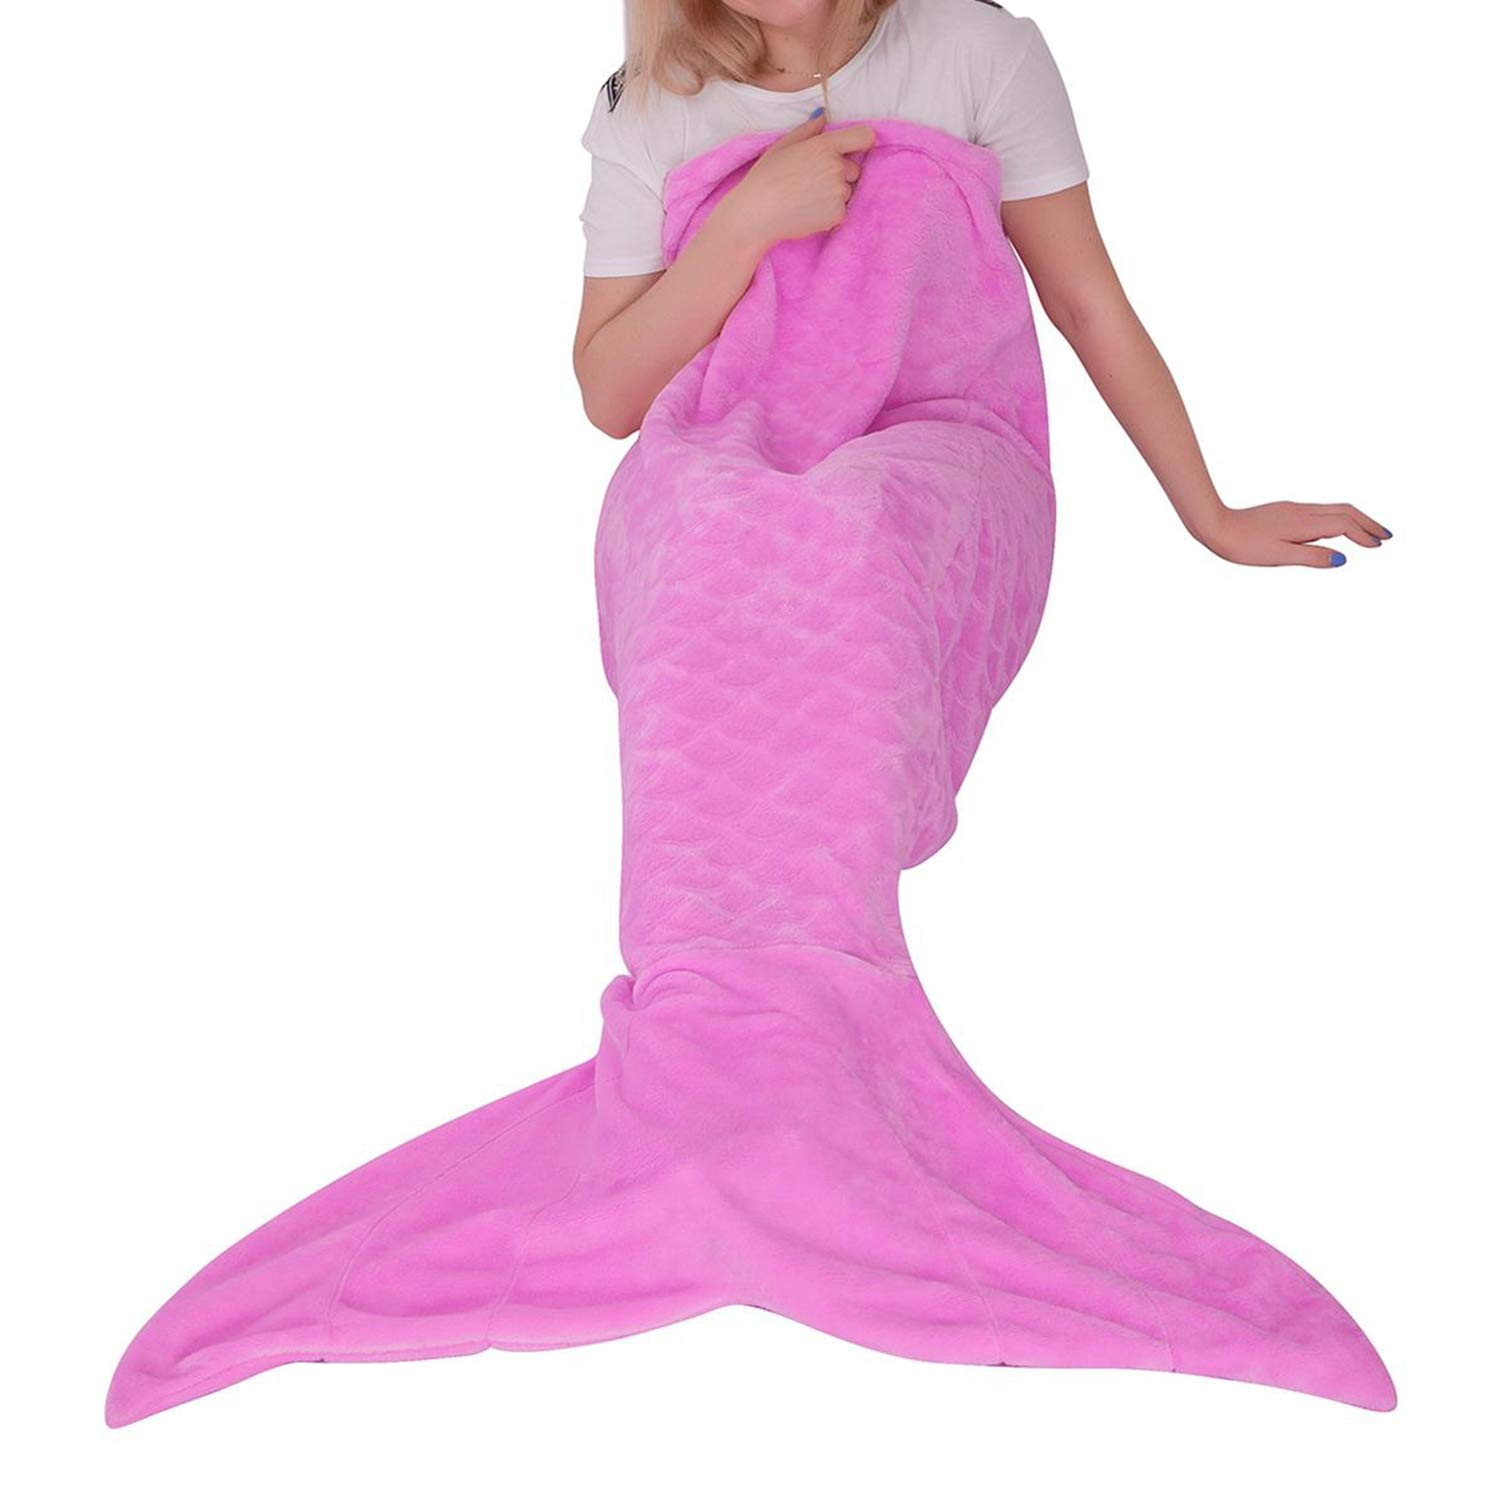 """Mermaid Tail Blanket for Kid Teen Adult,Plush Soft Flannel Fleece All Seasons Sleeping Bag with Twinkle Sequins Tail,Rainbow Ombre Glittering Fish Scale Snuggle Blanket,Best Gifts for Girls,25/""""/×60/"""" softan"""